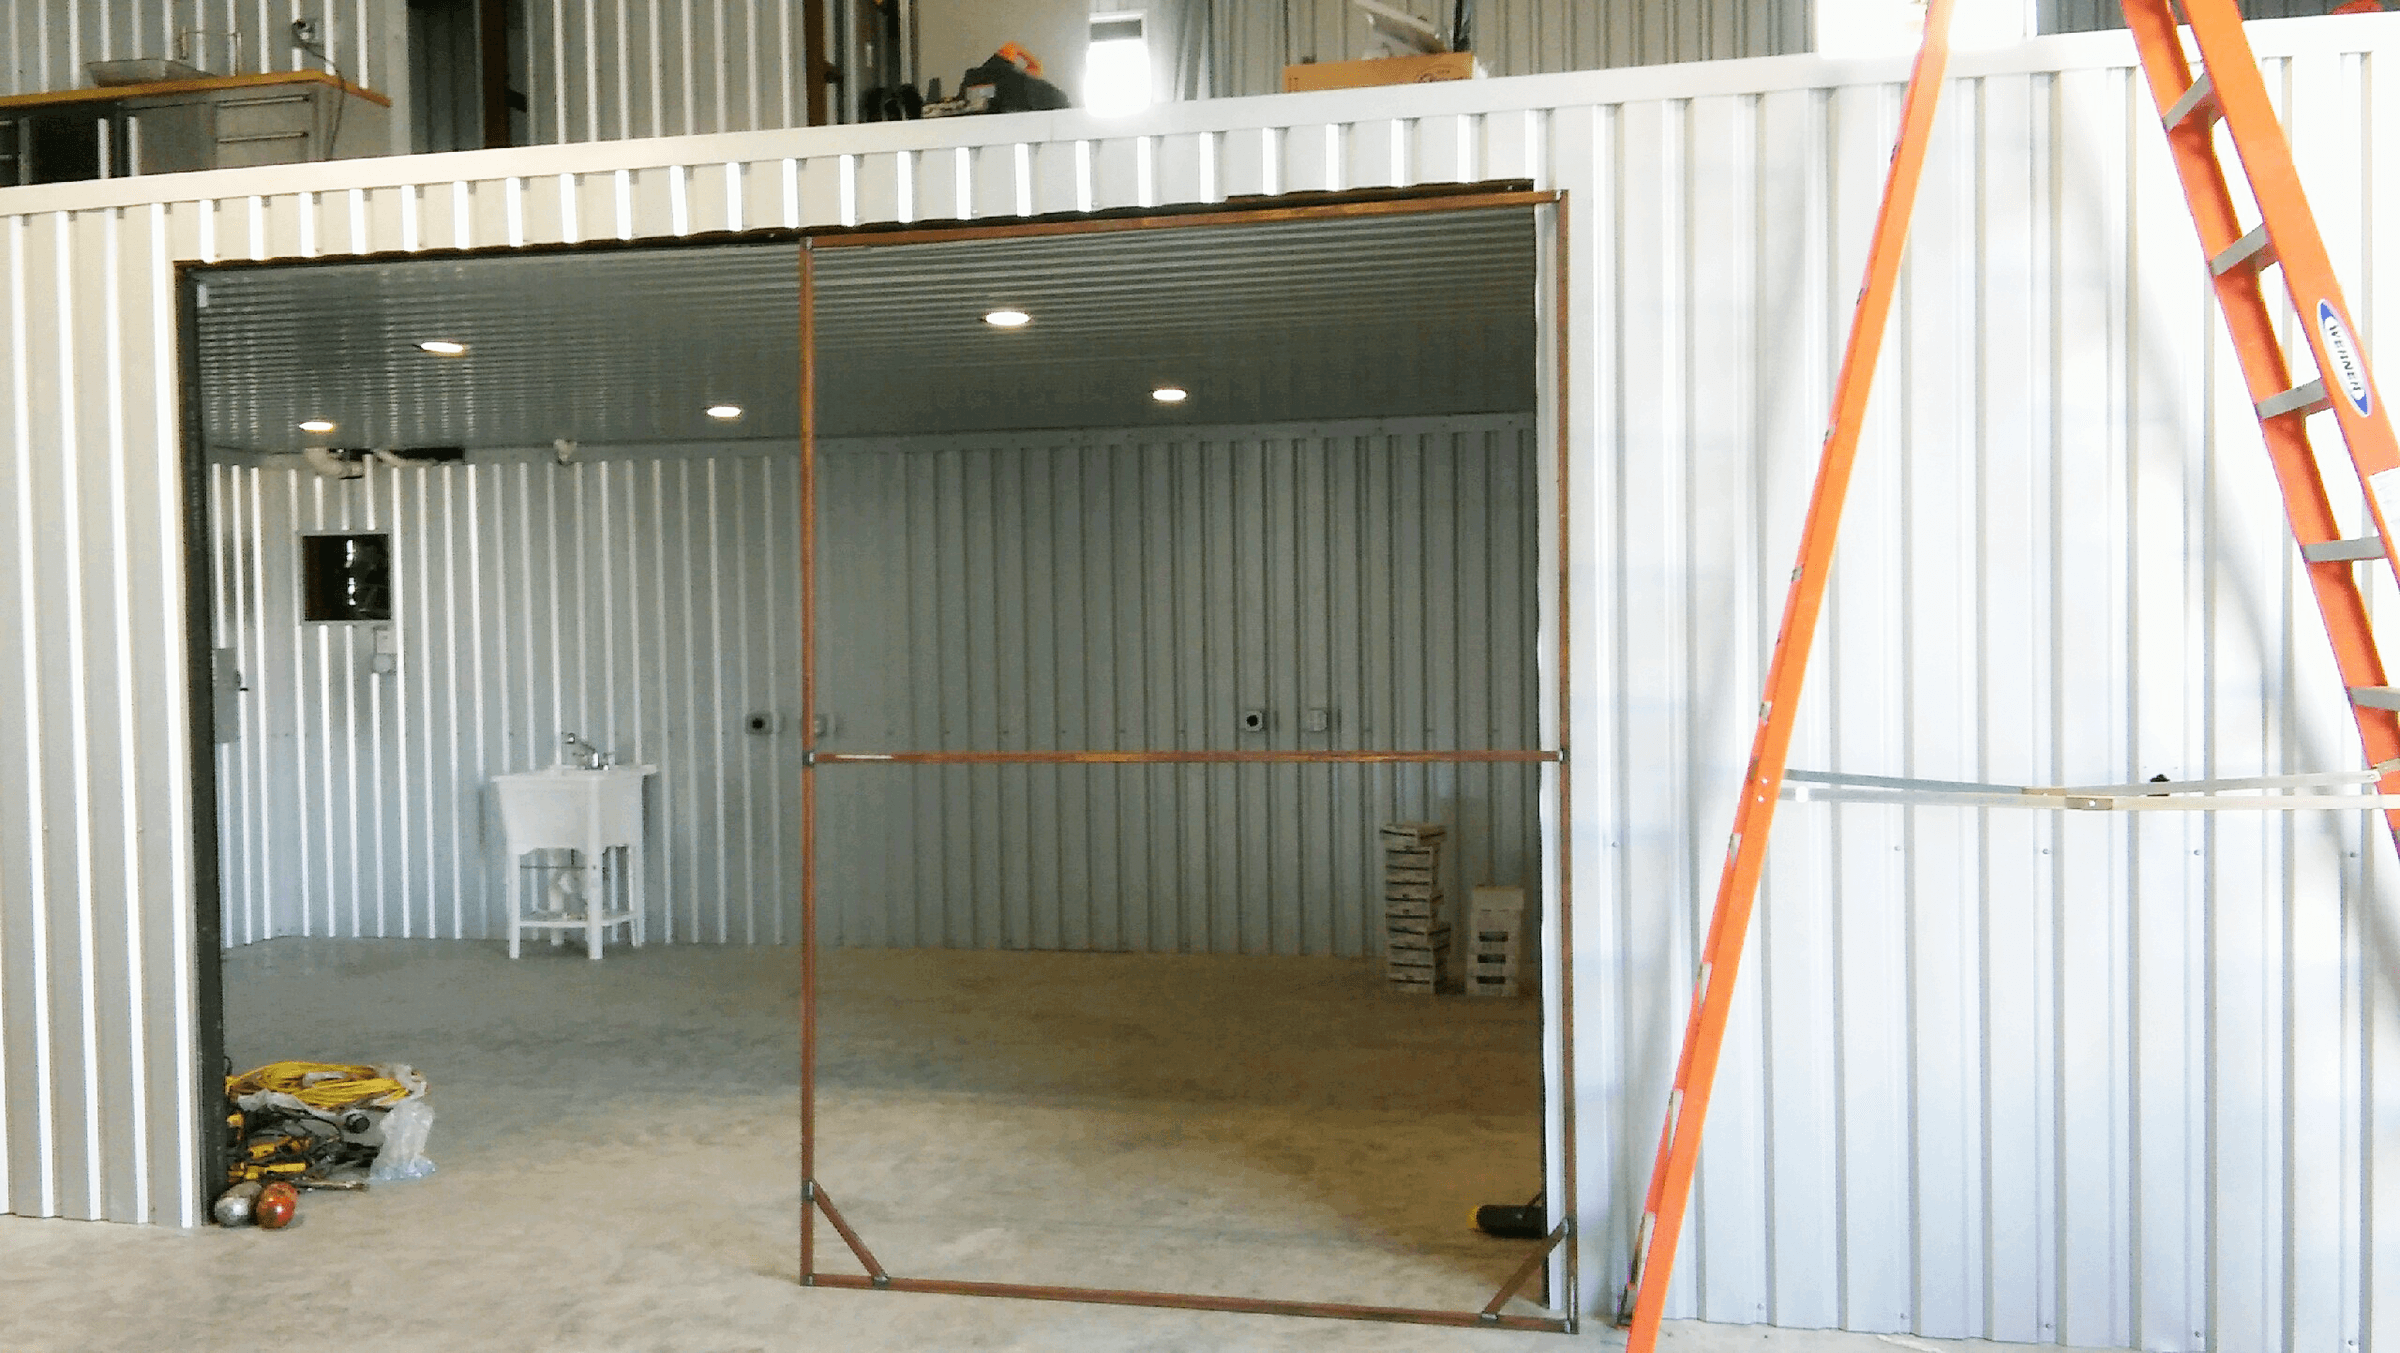 Working on the custom fabricated doors for the area under the mezzanine.